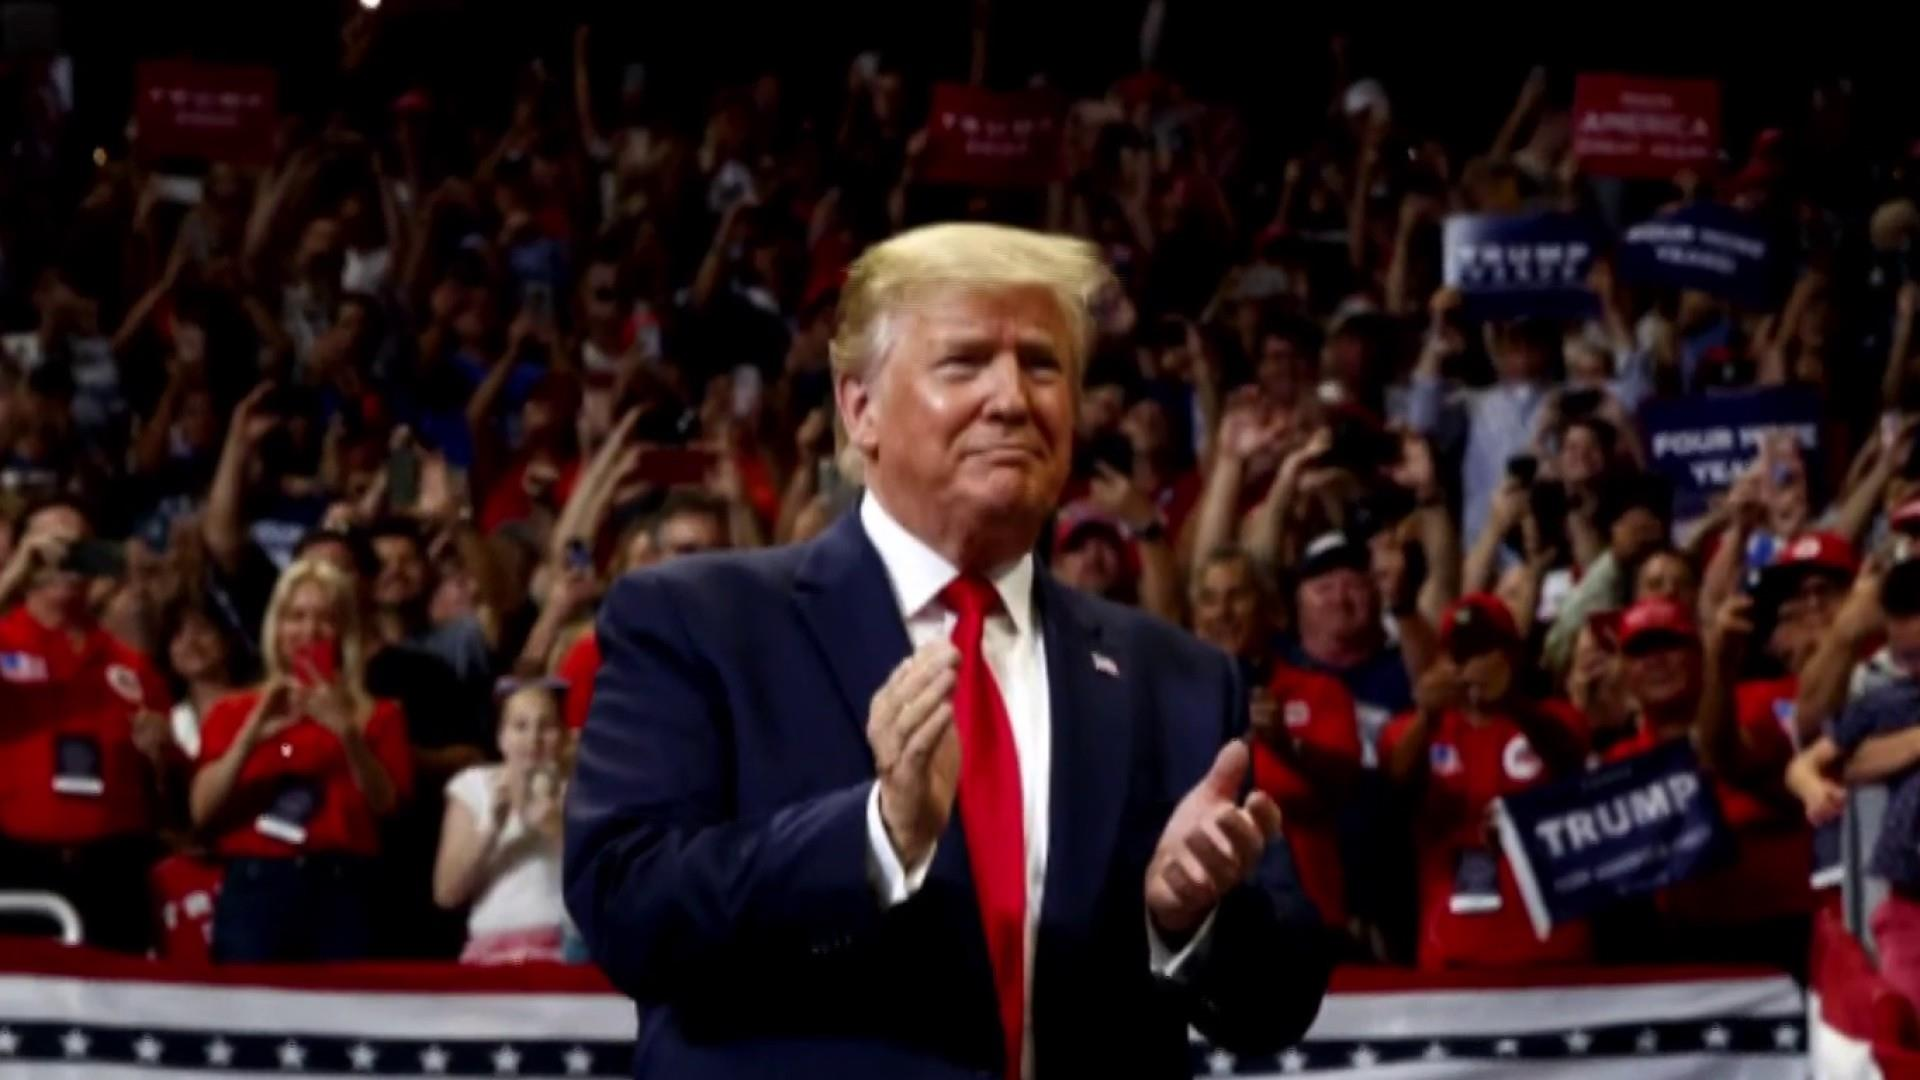 Trump's 2020 kick-off rally: I think we've seen this before